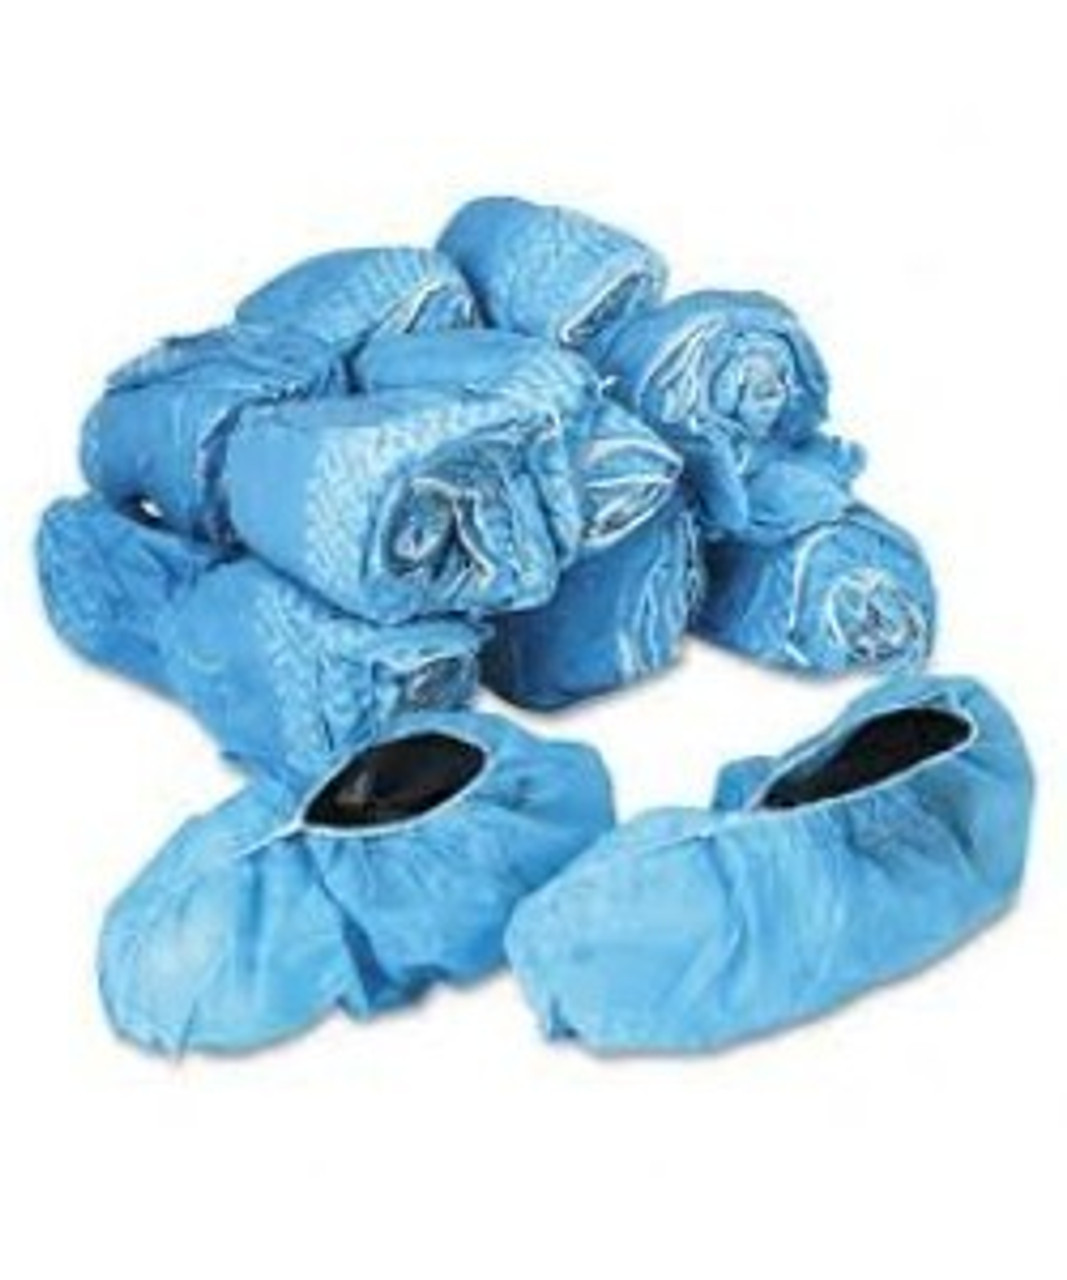 Shoe Covers - 2X Large